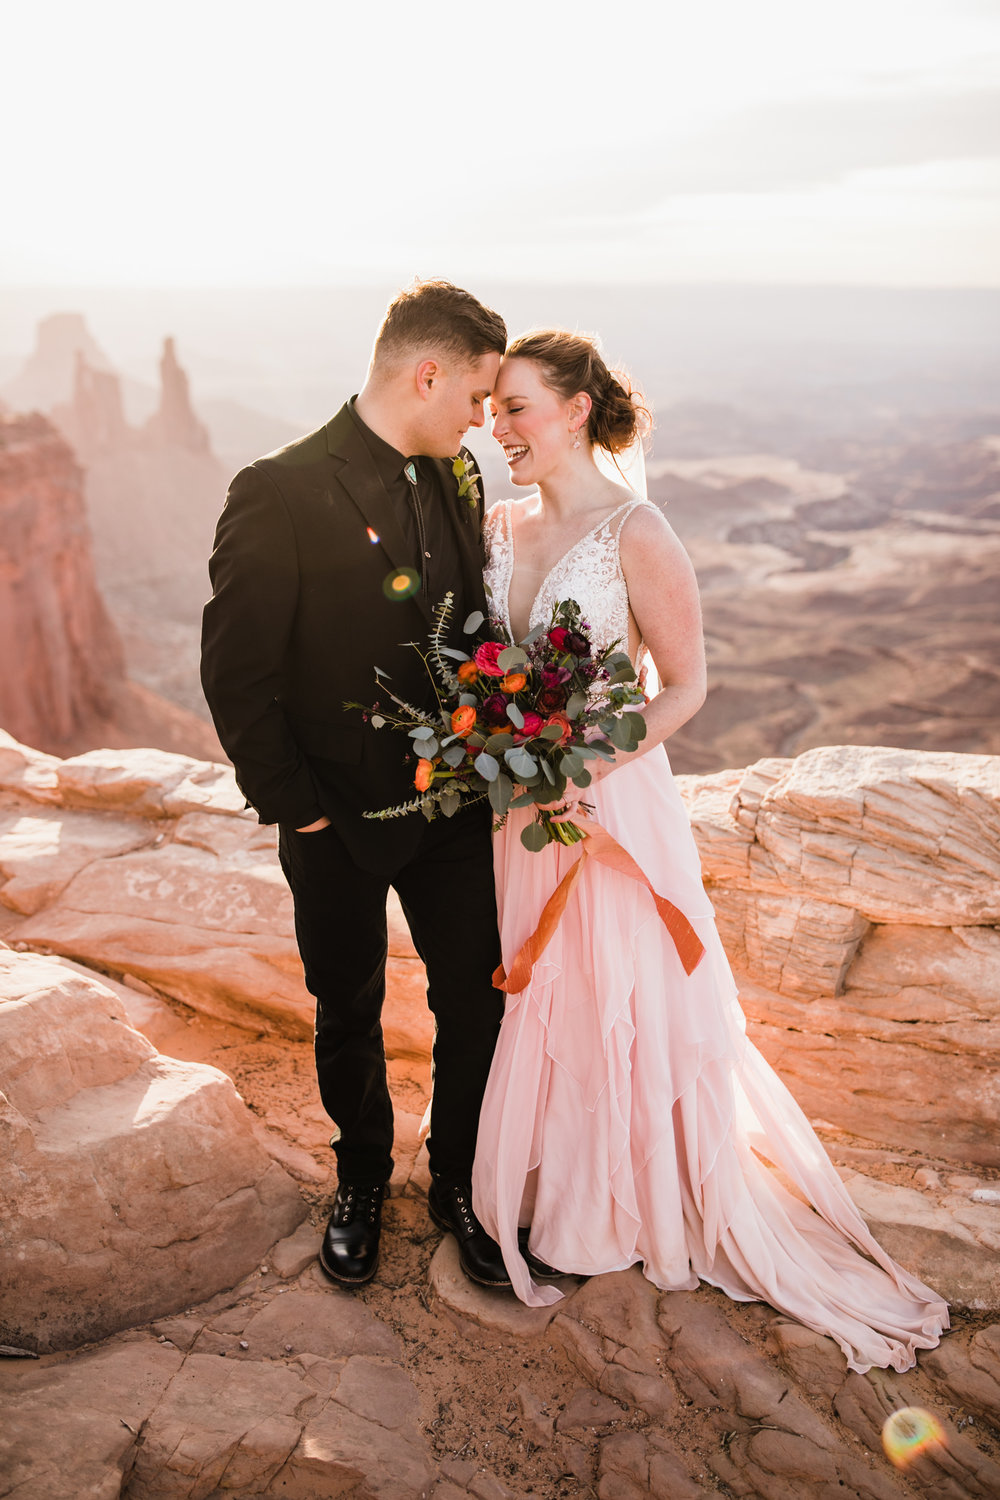 desert wedding in canyonlands national park | mesa arch elopement | moab utah wedding photographer | custom pink wedding dress | the hearnes adventure photography